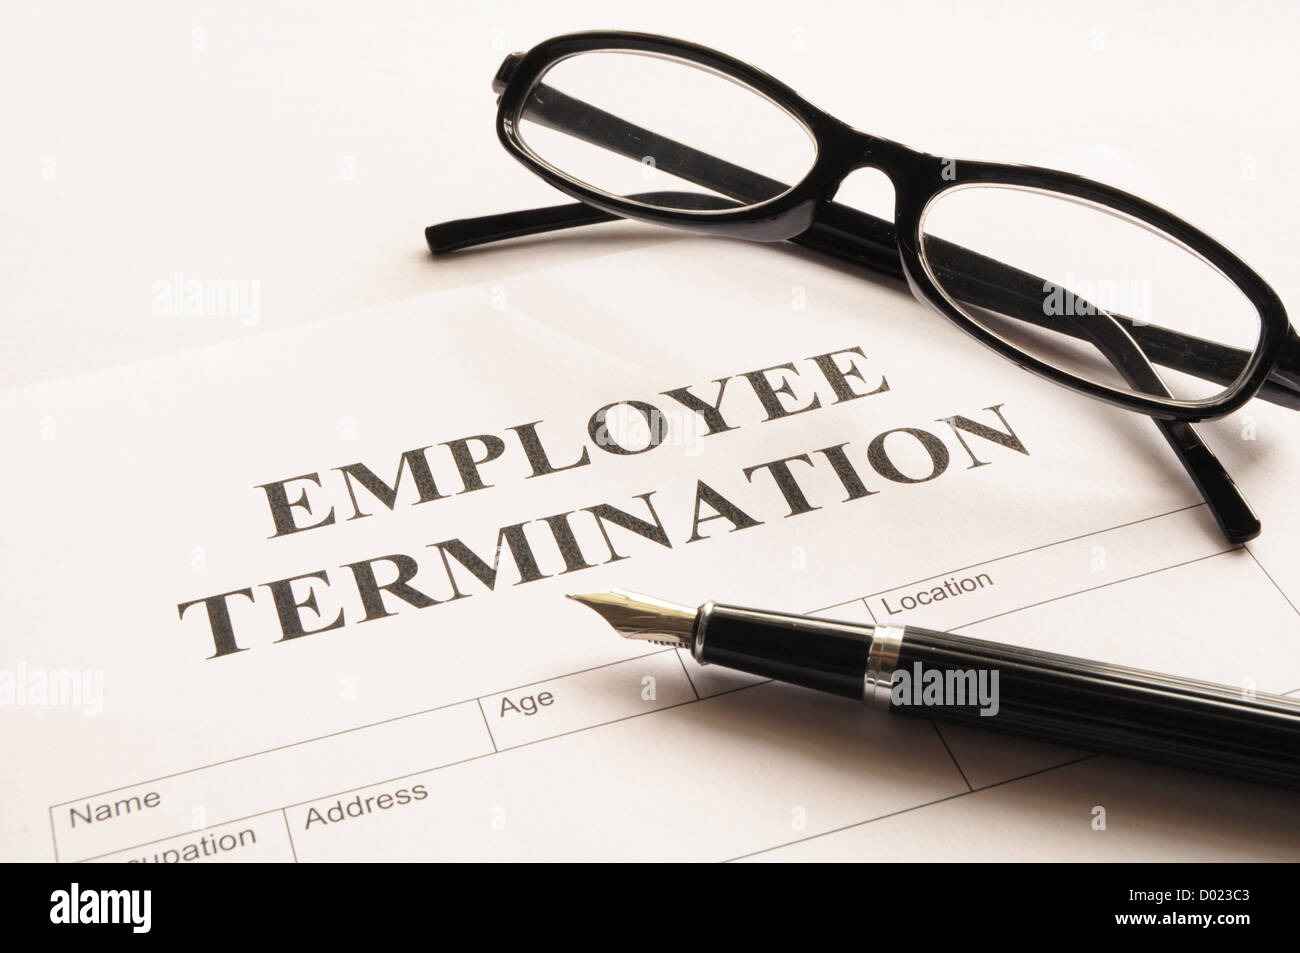 employee termination form on desk in business office showing job concept - Stock Image